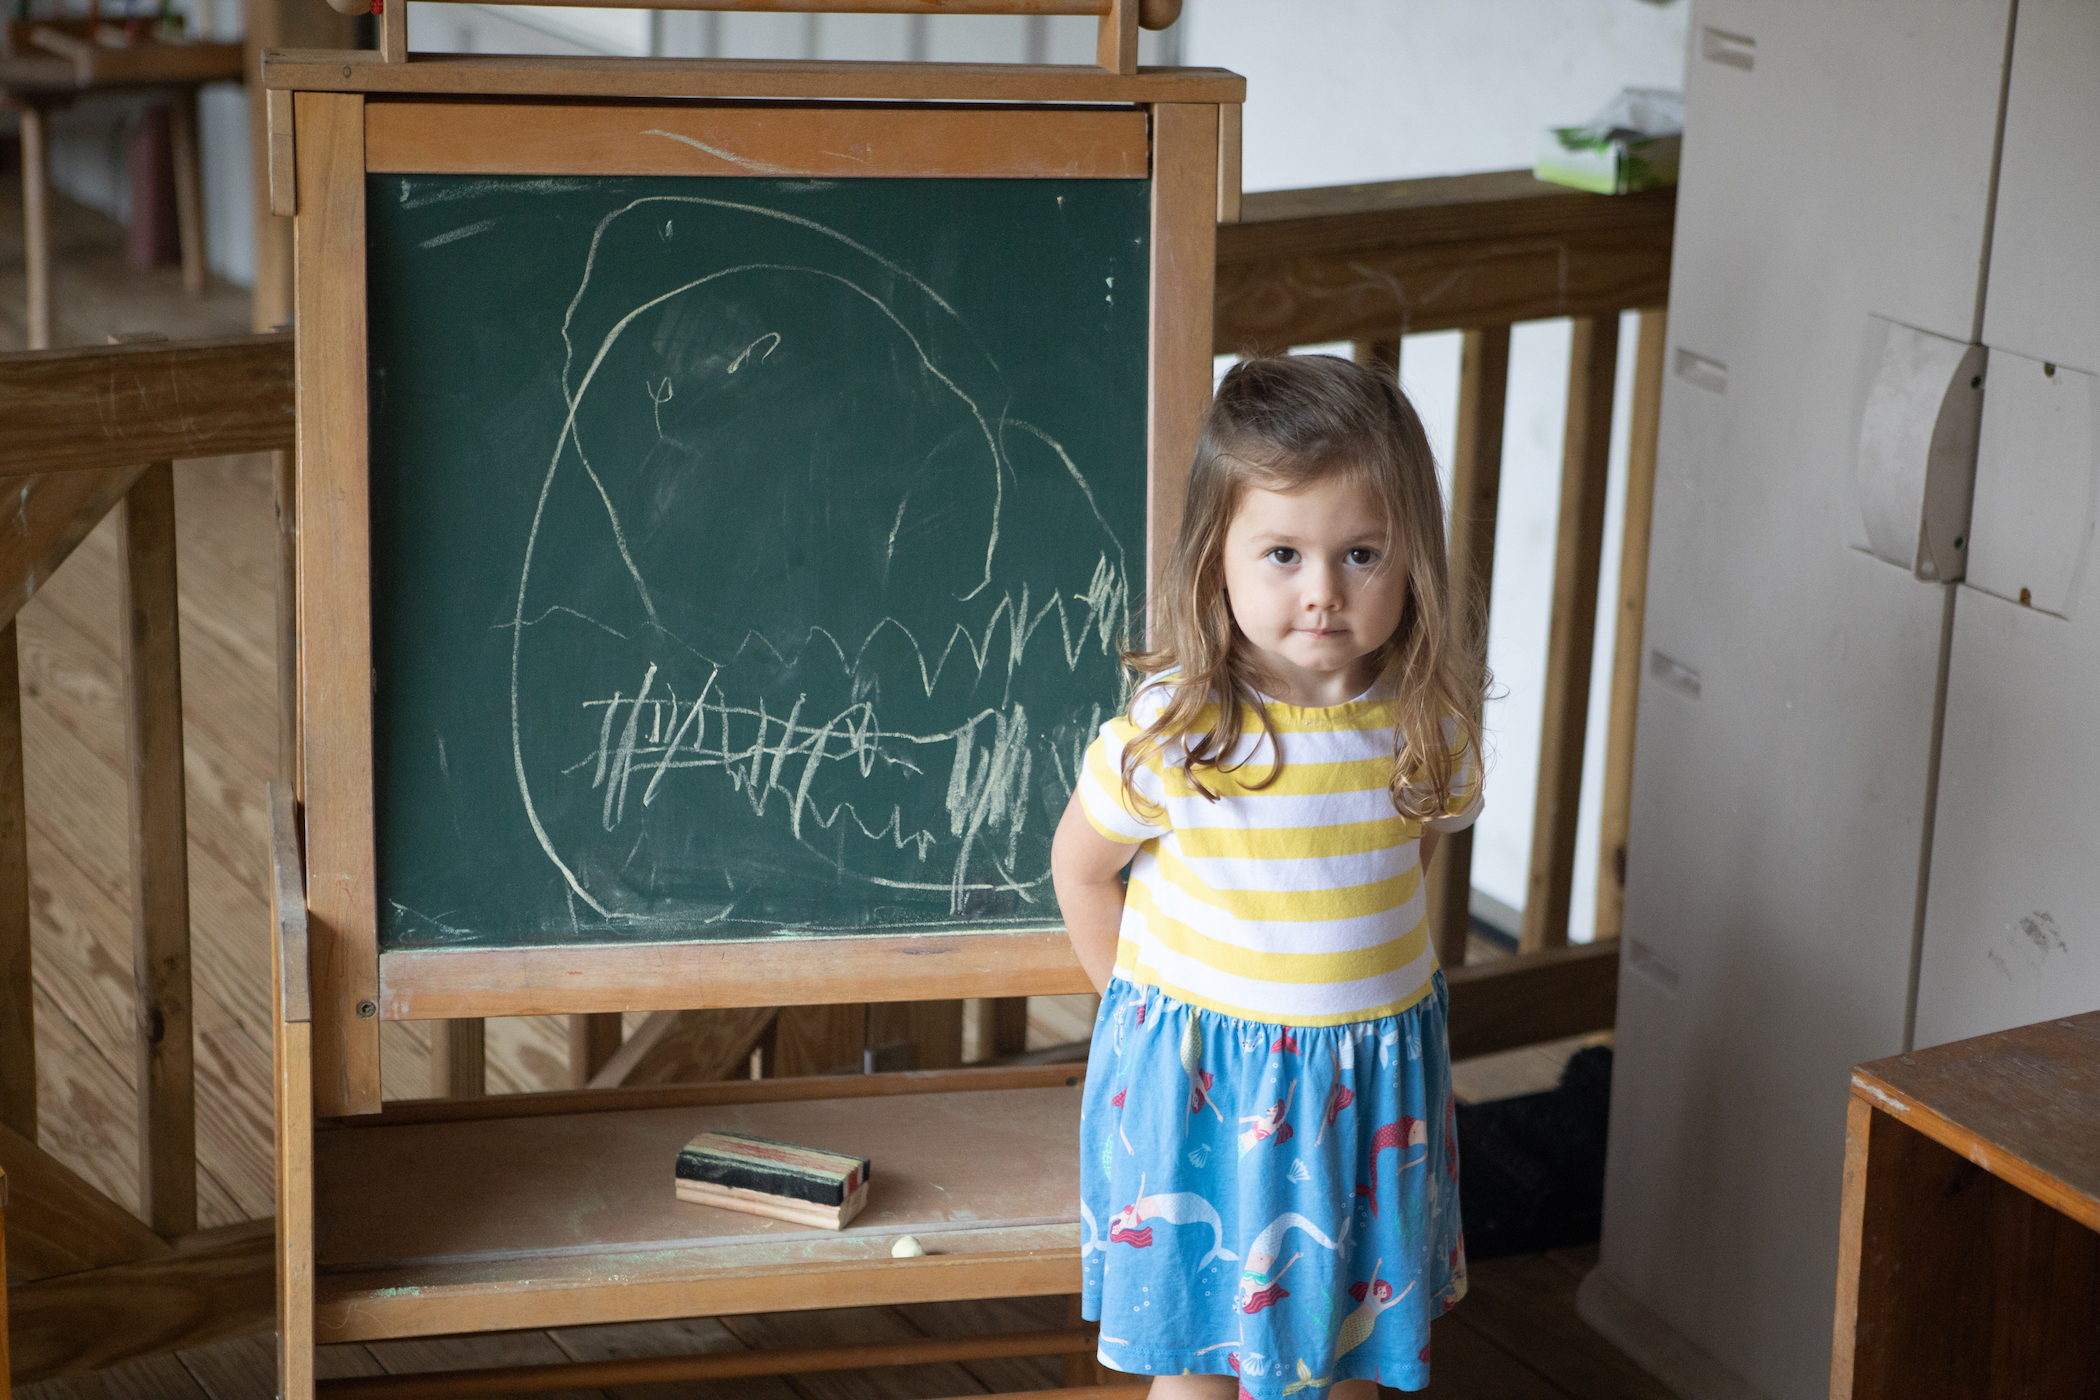 Girl stands by outdoor chalkboard